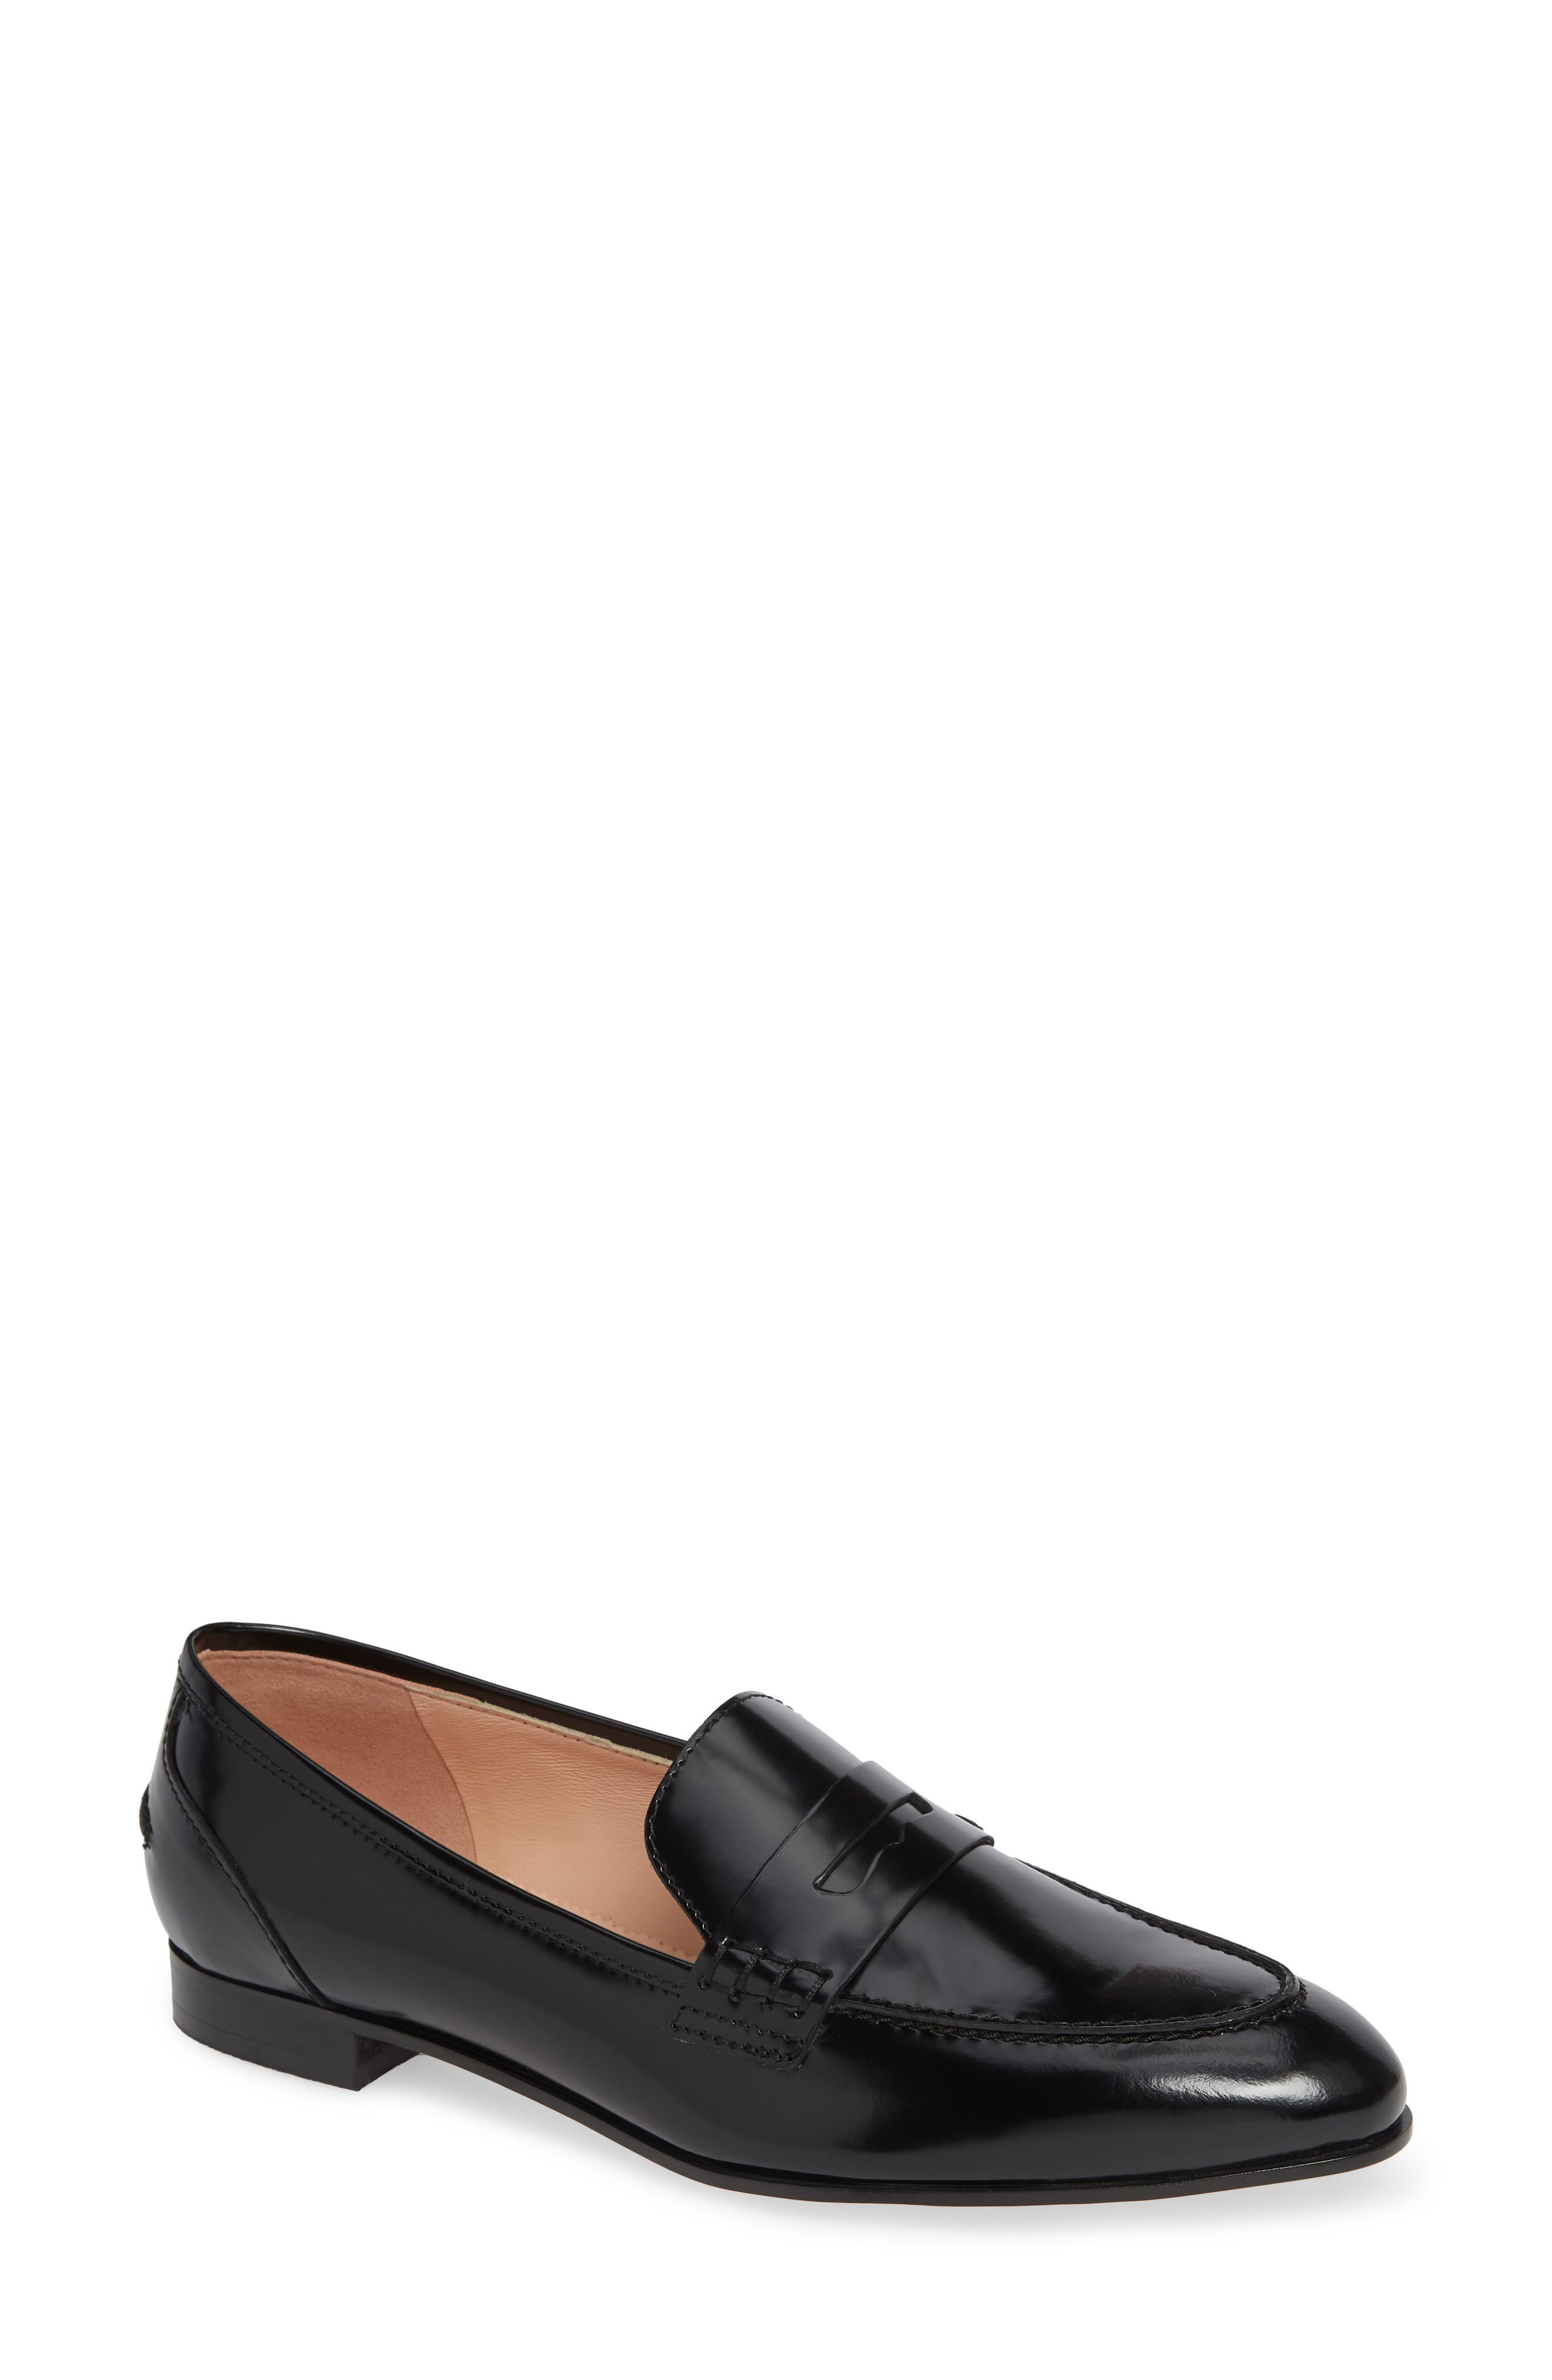 Academy Penny Loafer,                         Main,                         color, BLACK LEATHER